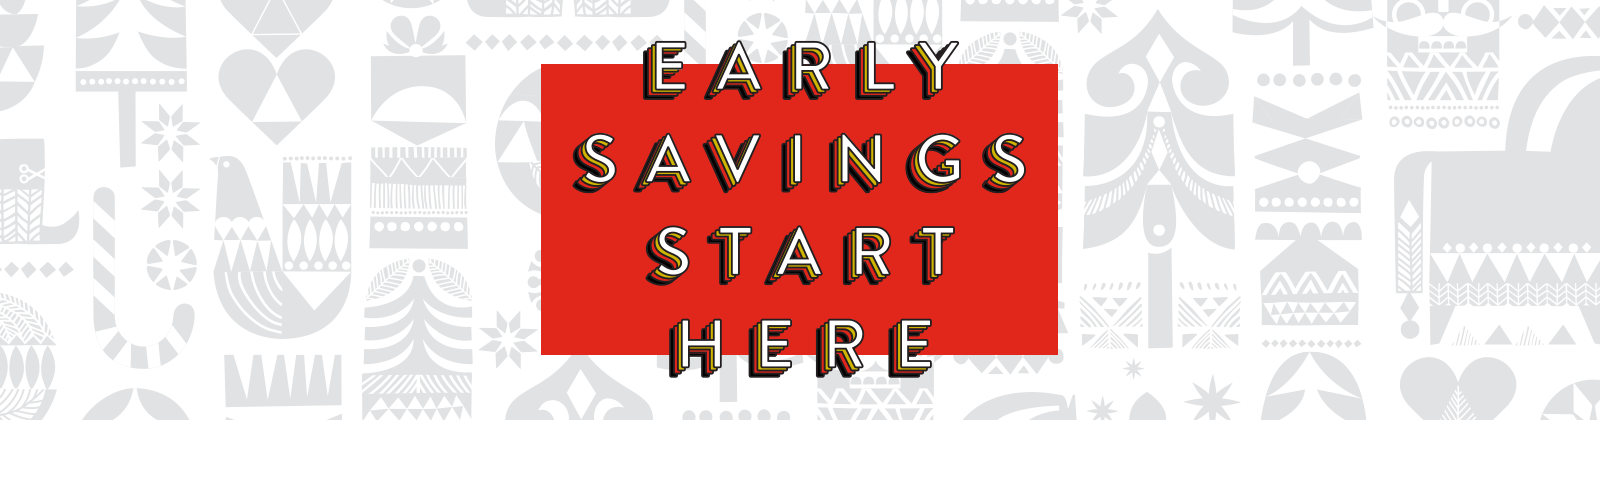 Early savings start here.